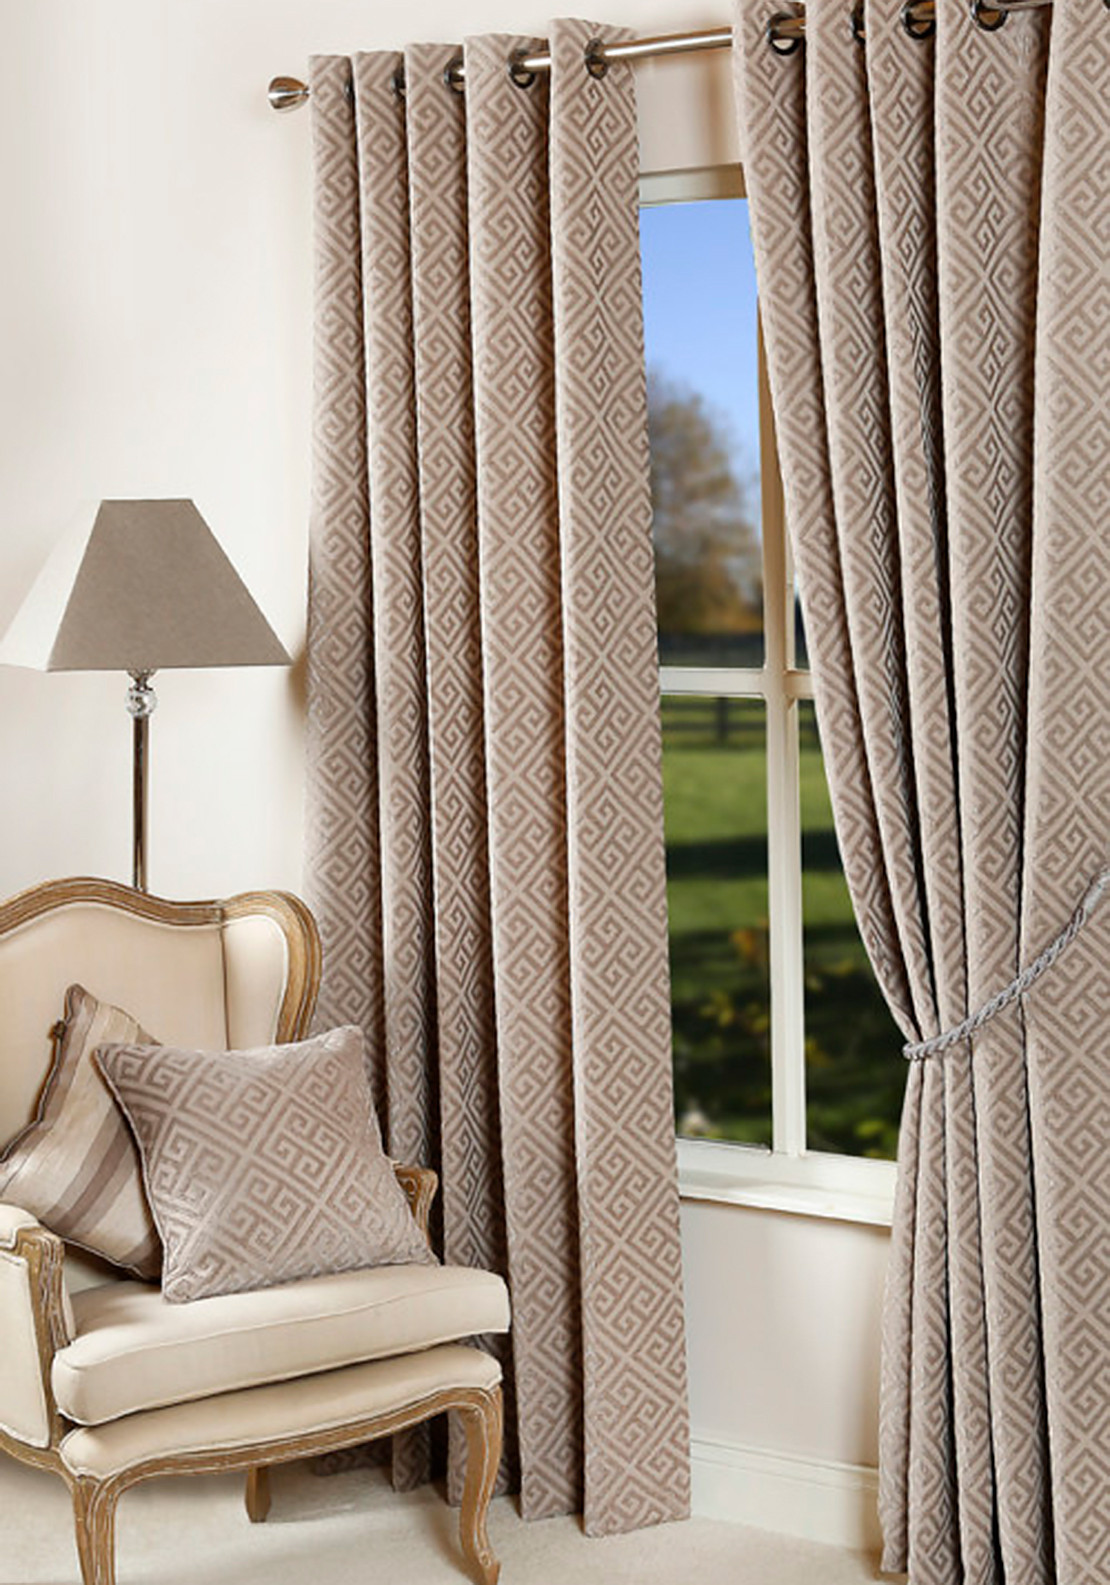 Scatterbox Greek Key Fully Lined Ready-Made curtains, 66 X 90in, Mink